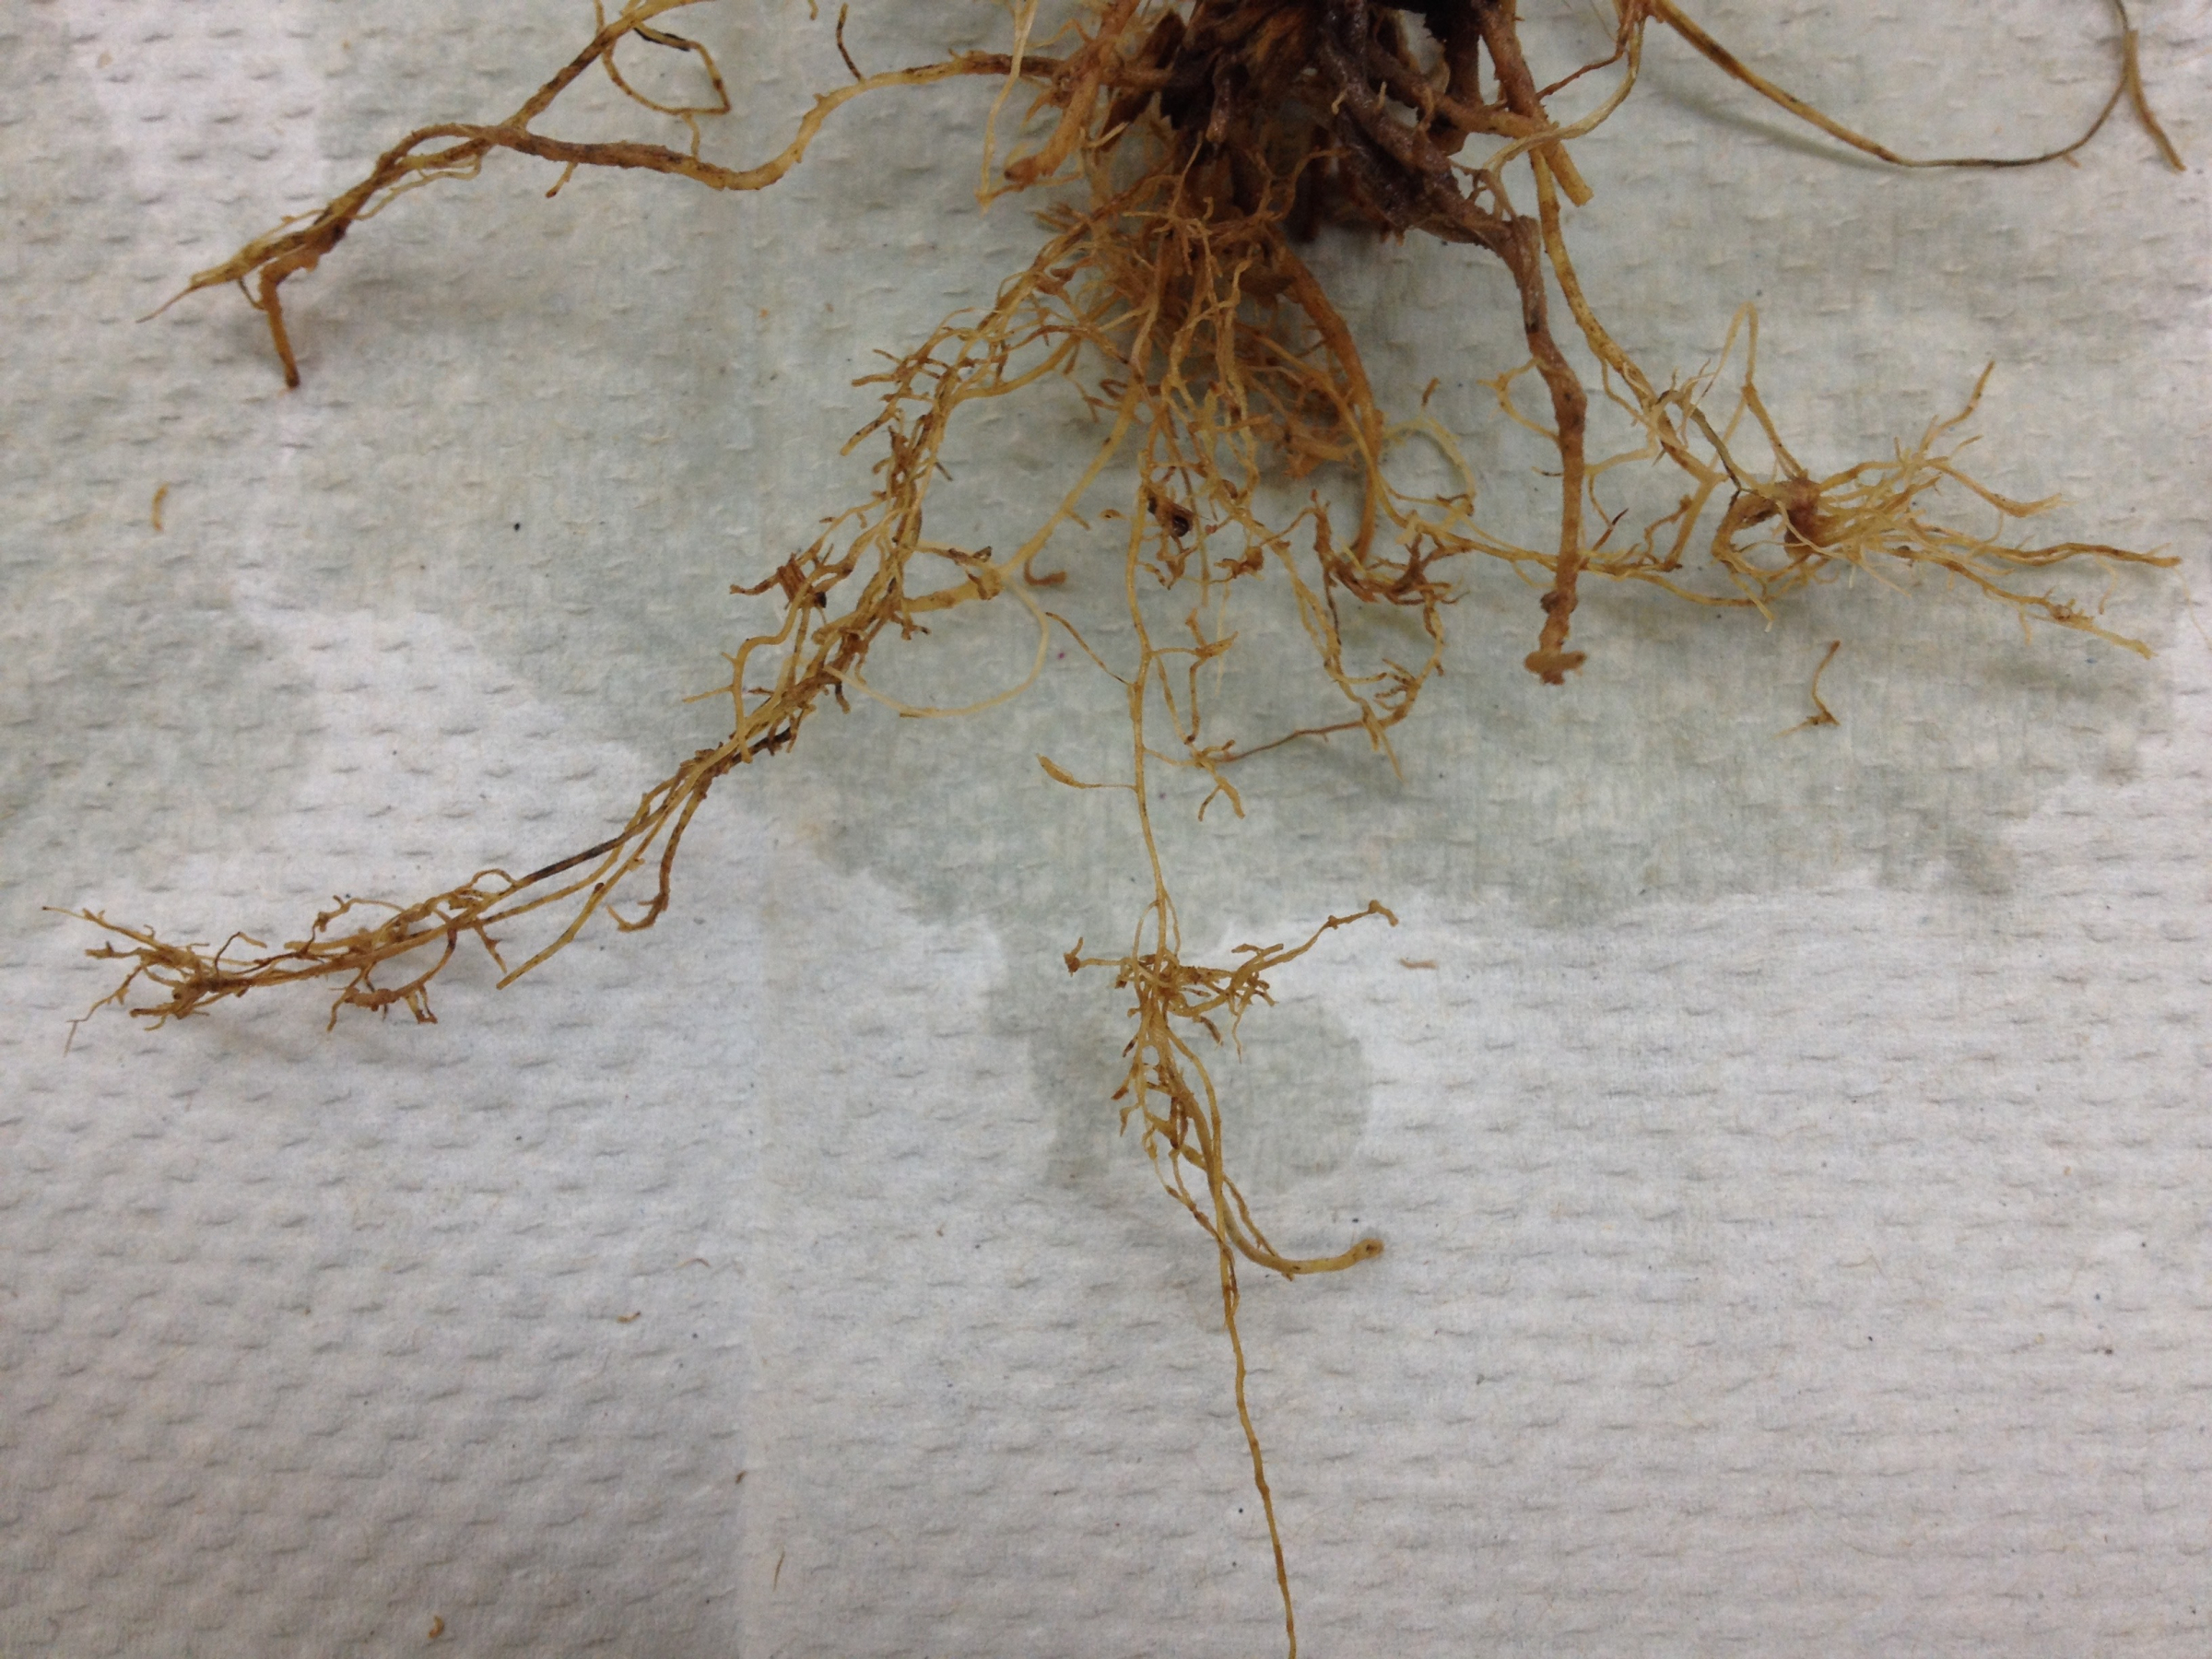 Cereal cyst nematode root damage.